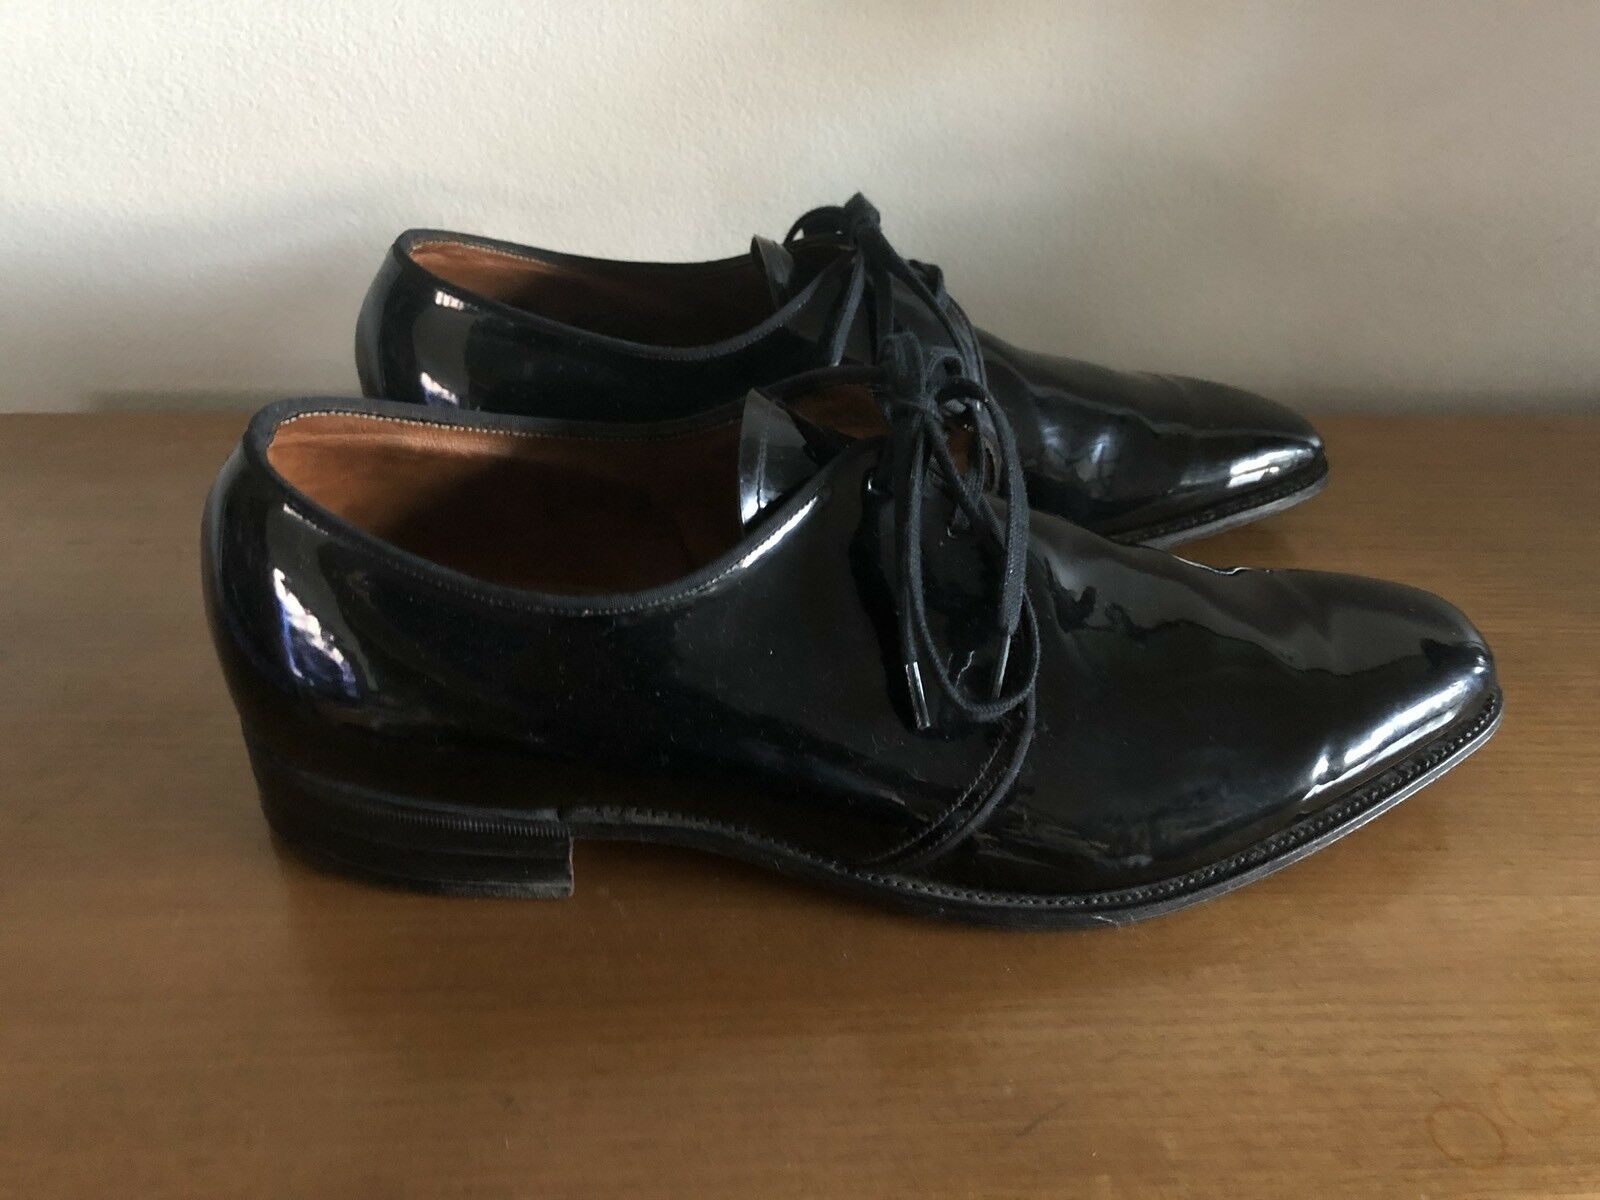 K shoes England - Leather Upper & Soles - Collectible - Made in Cumbria - Size 7